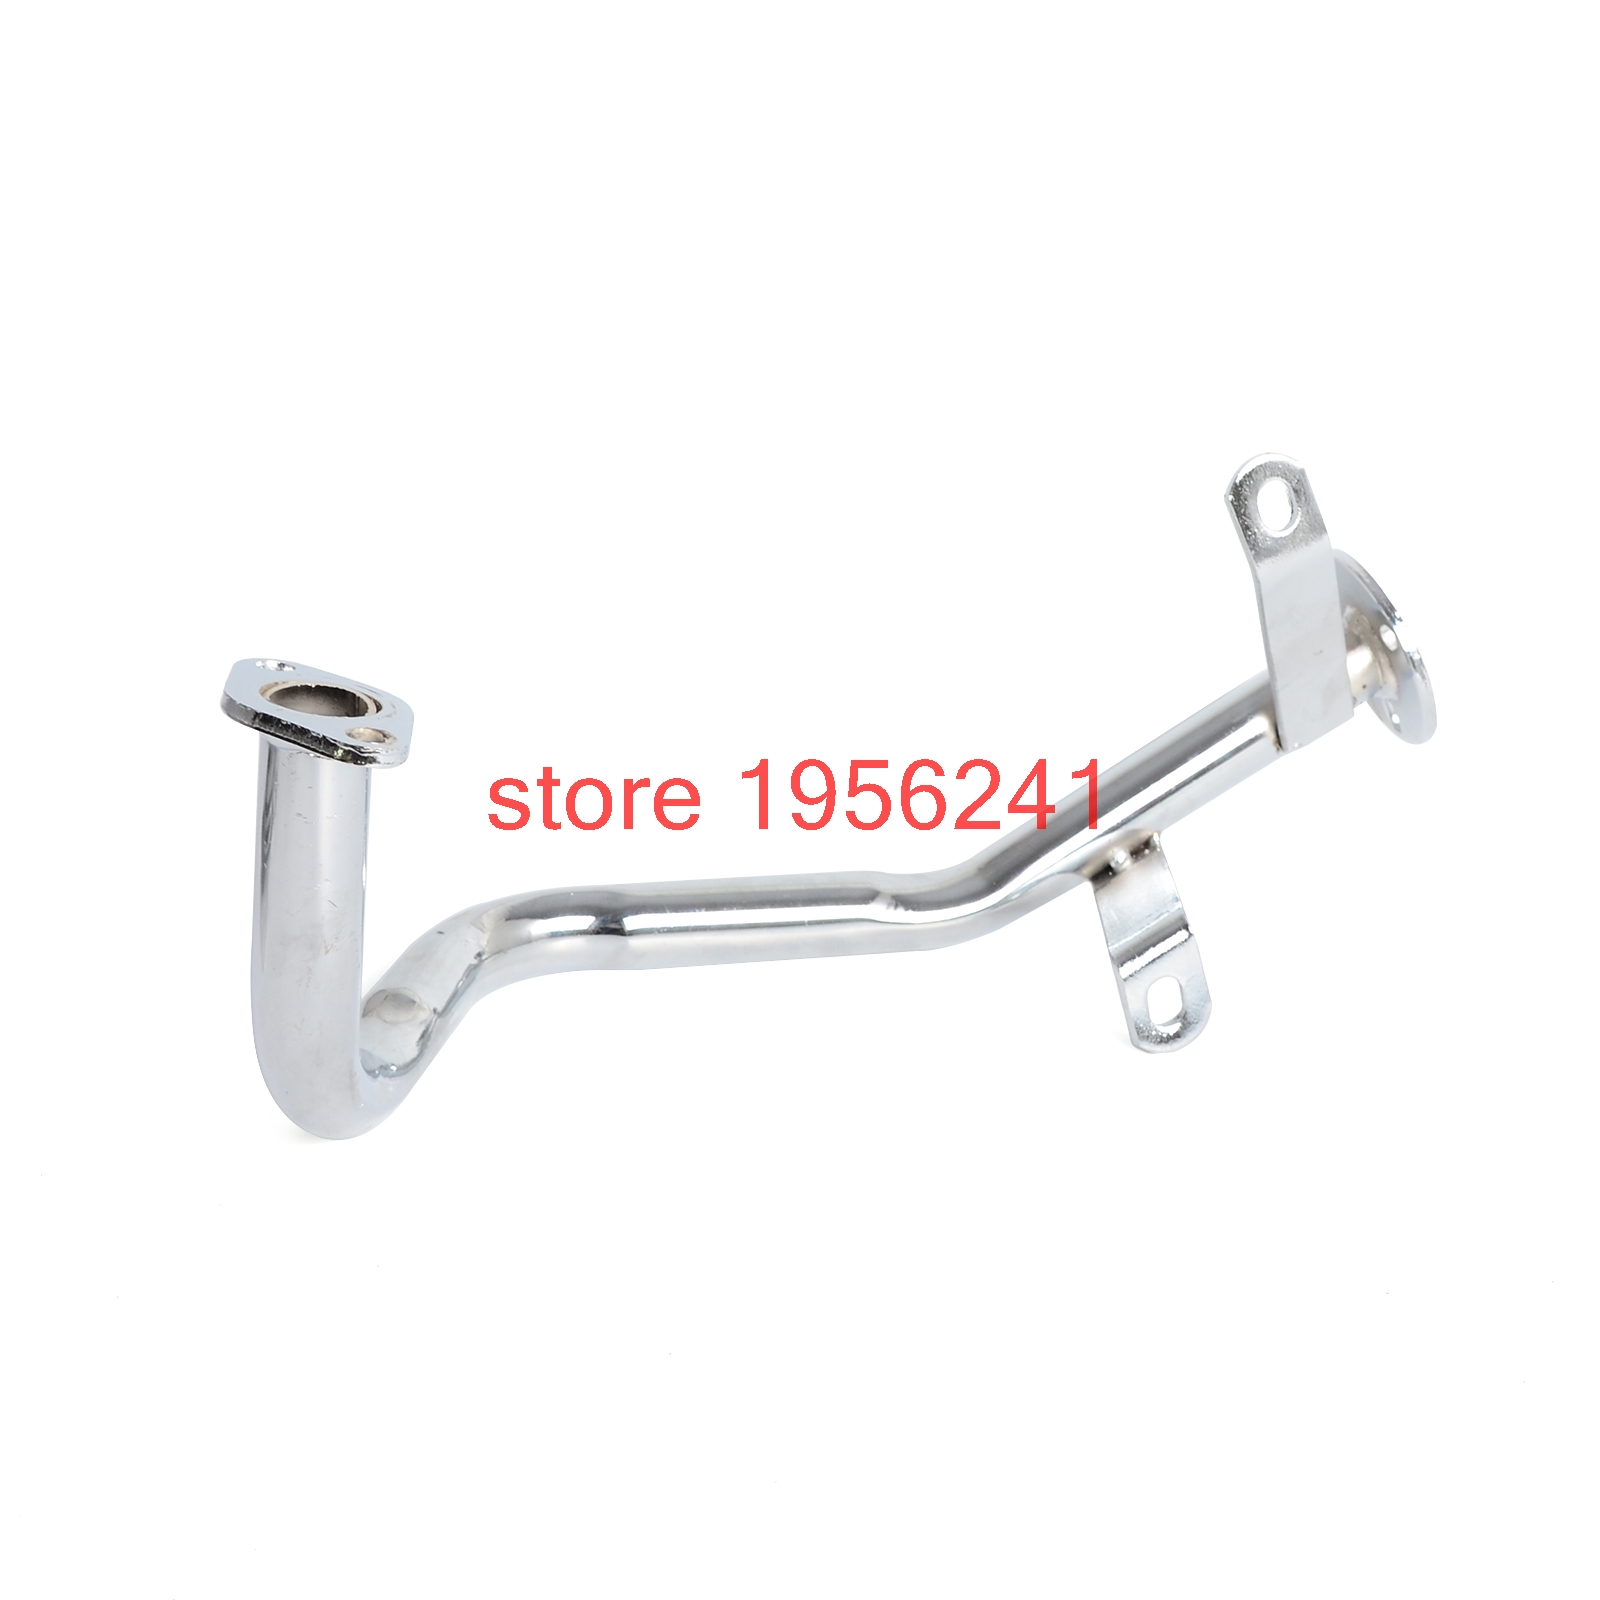 Nicecnc Blue Exhaust System Muffler Pipe for GY6 139QMB QMB139 1P39QMB 4 Stroke 50cc Chinese Scooters